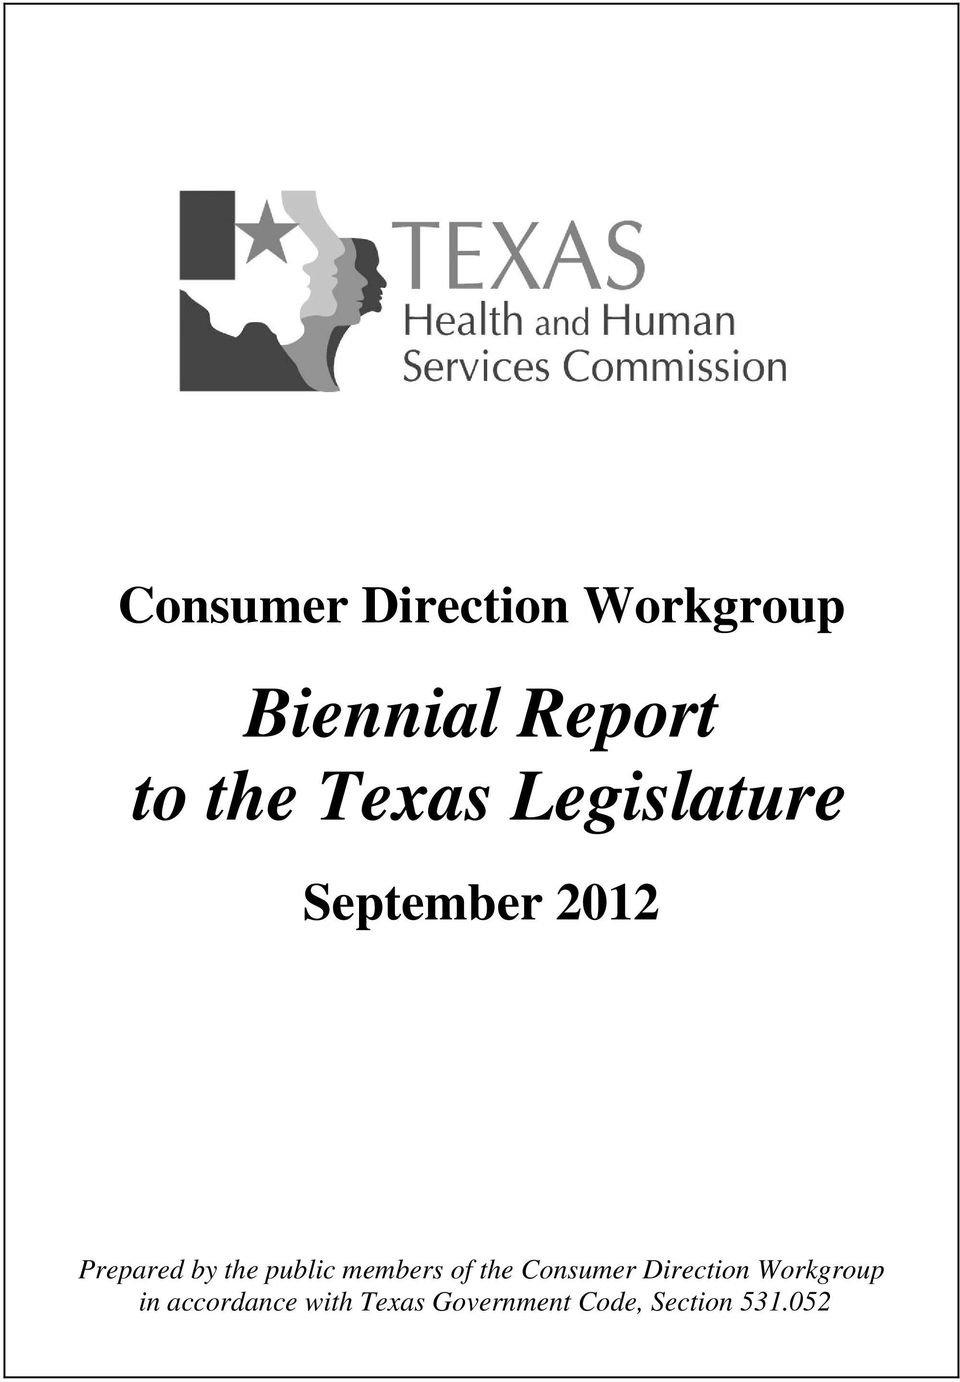 public members of the Consumer Direction Workgroup